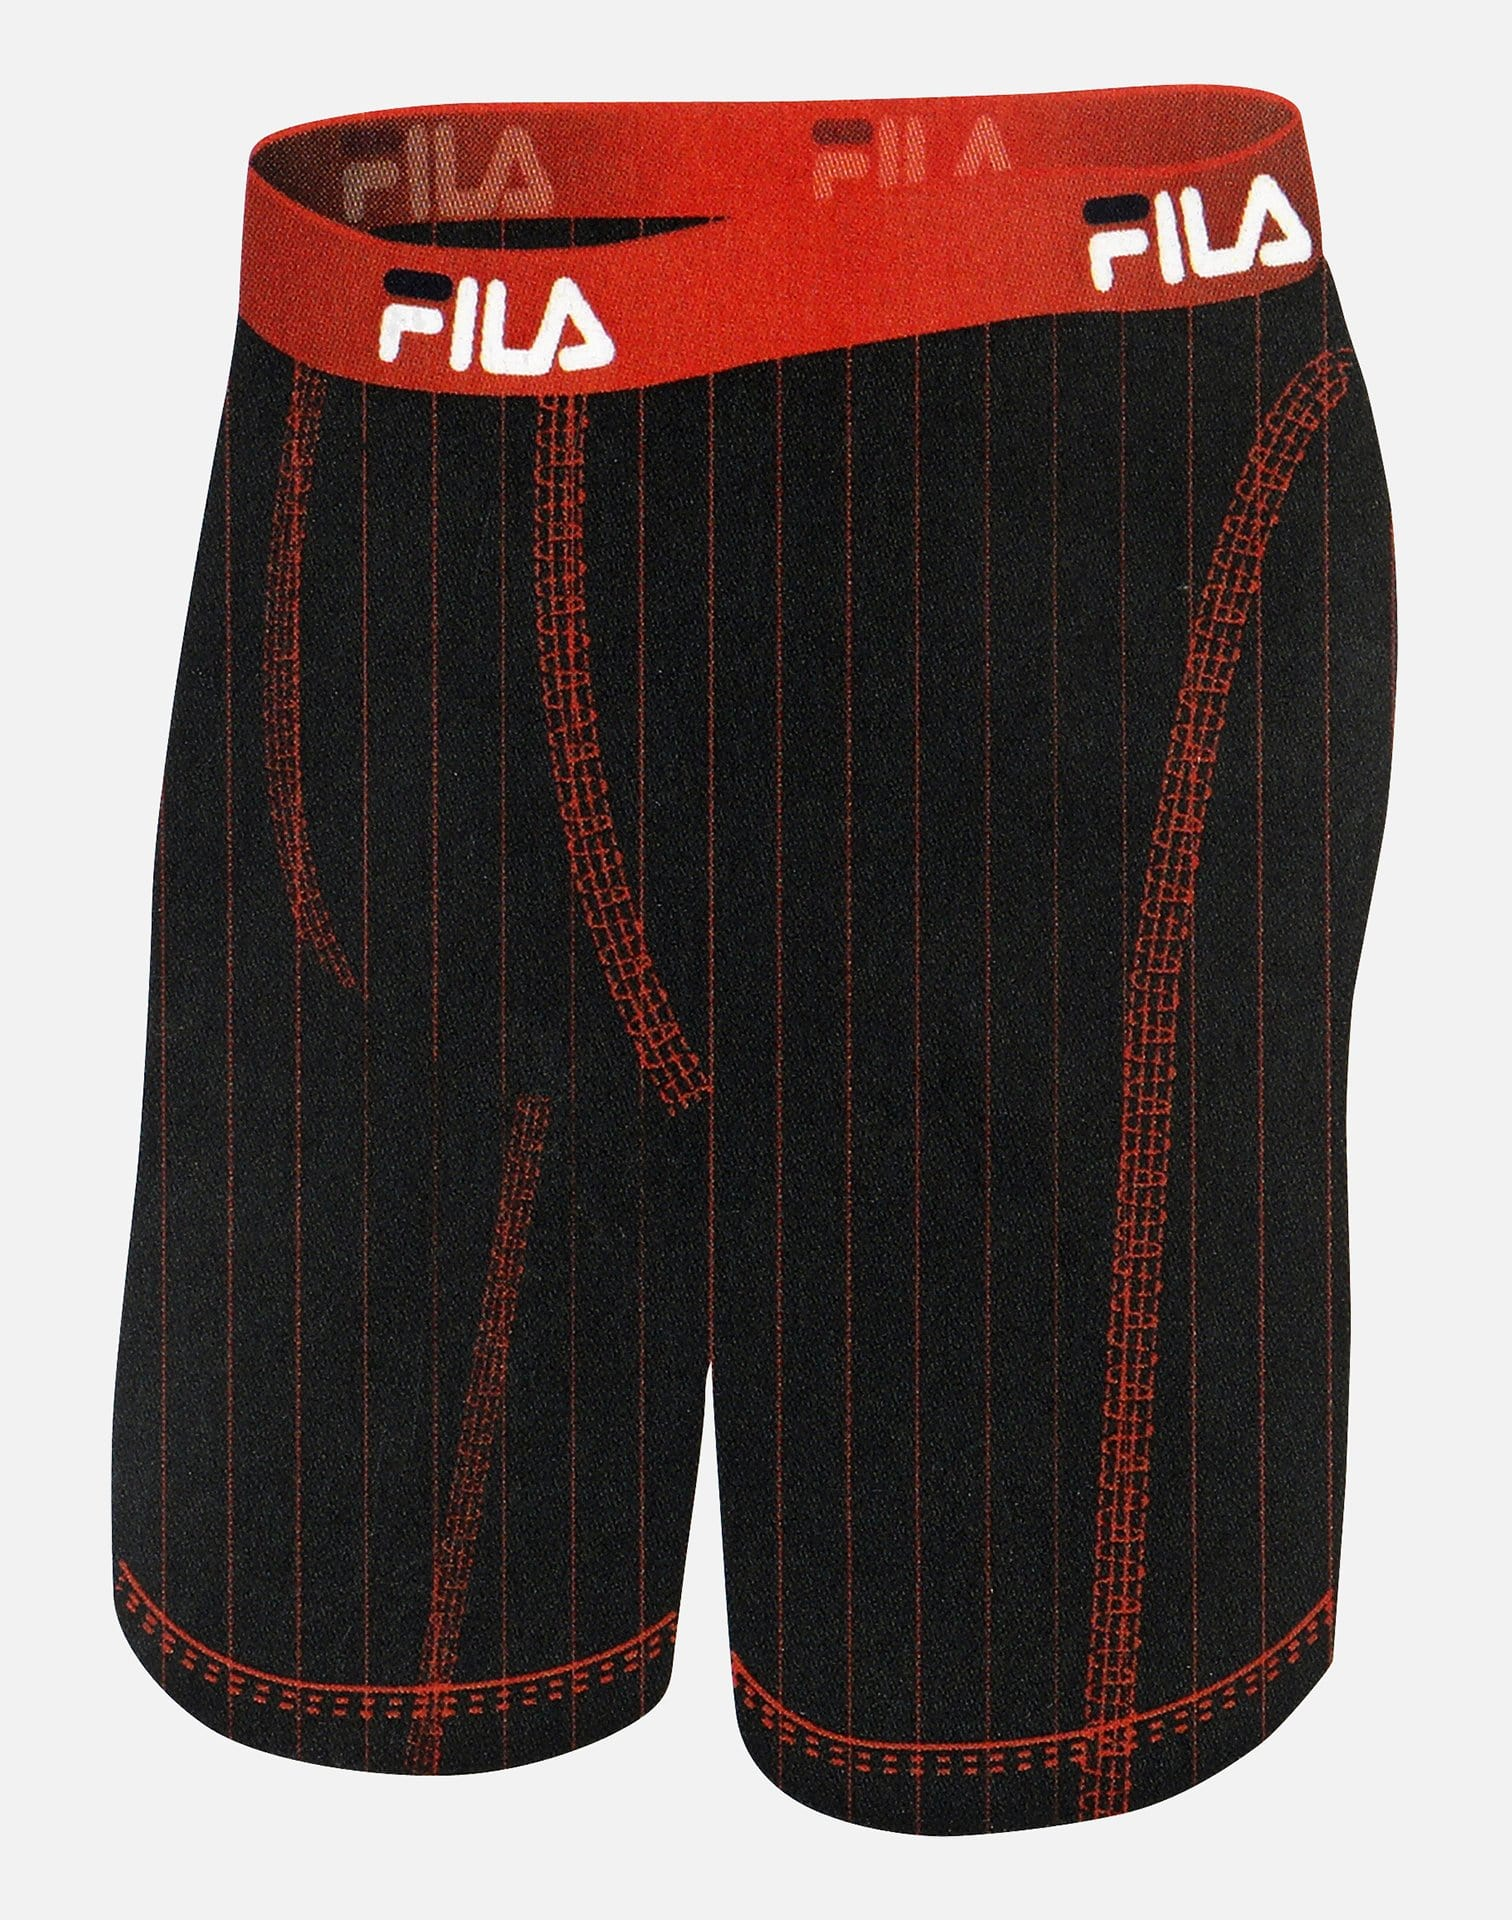 FILA Men's OG Fitness Striped Boxer Briefs